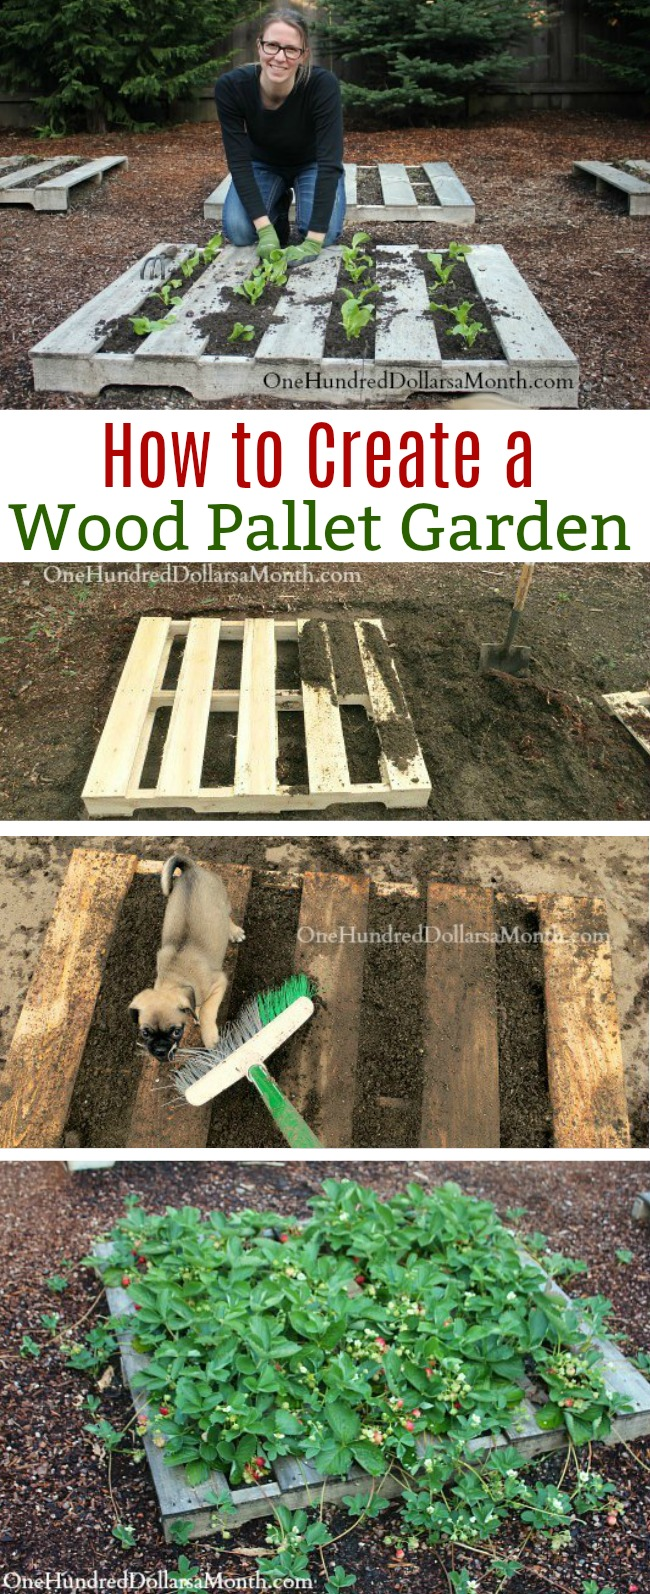 Pallet Gardening – How to Create a Wood Pallet Garden